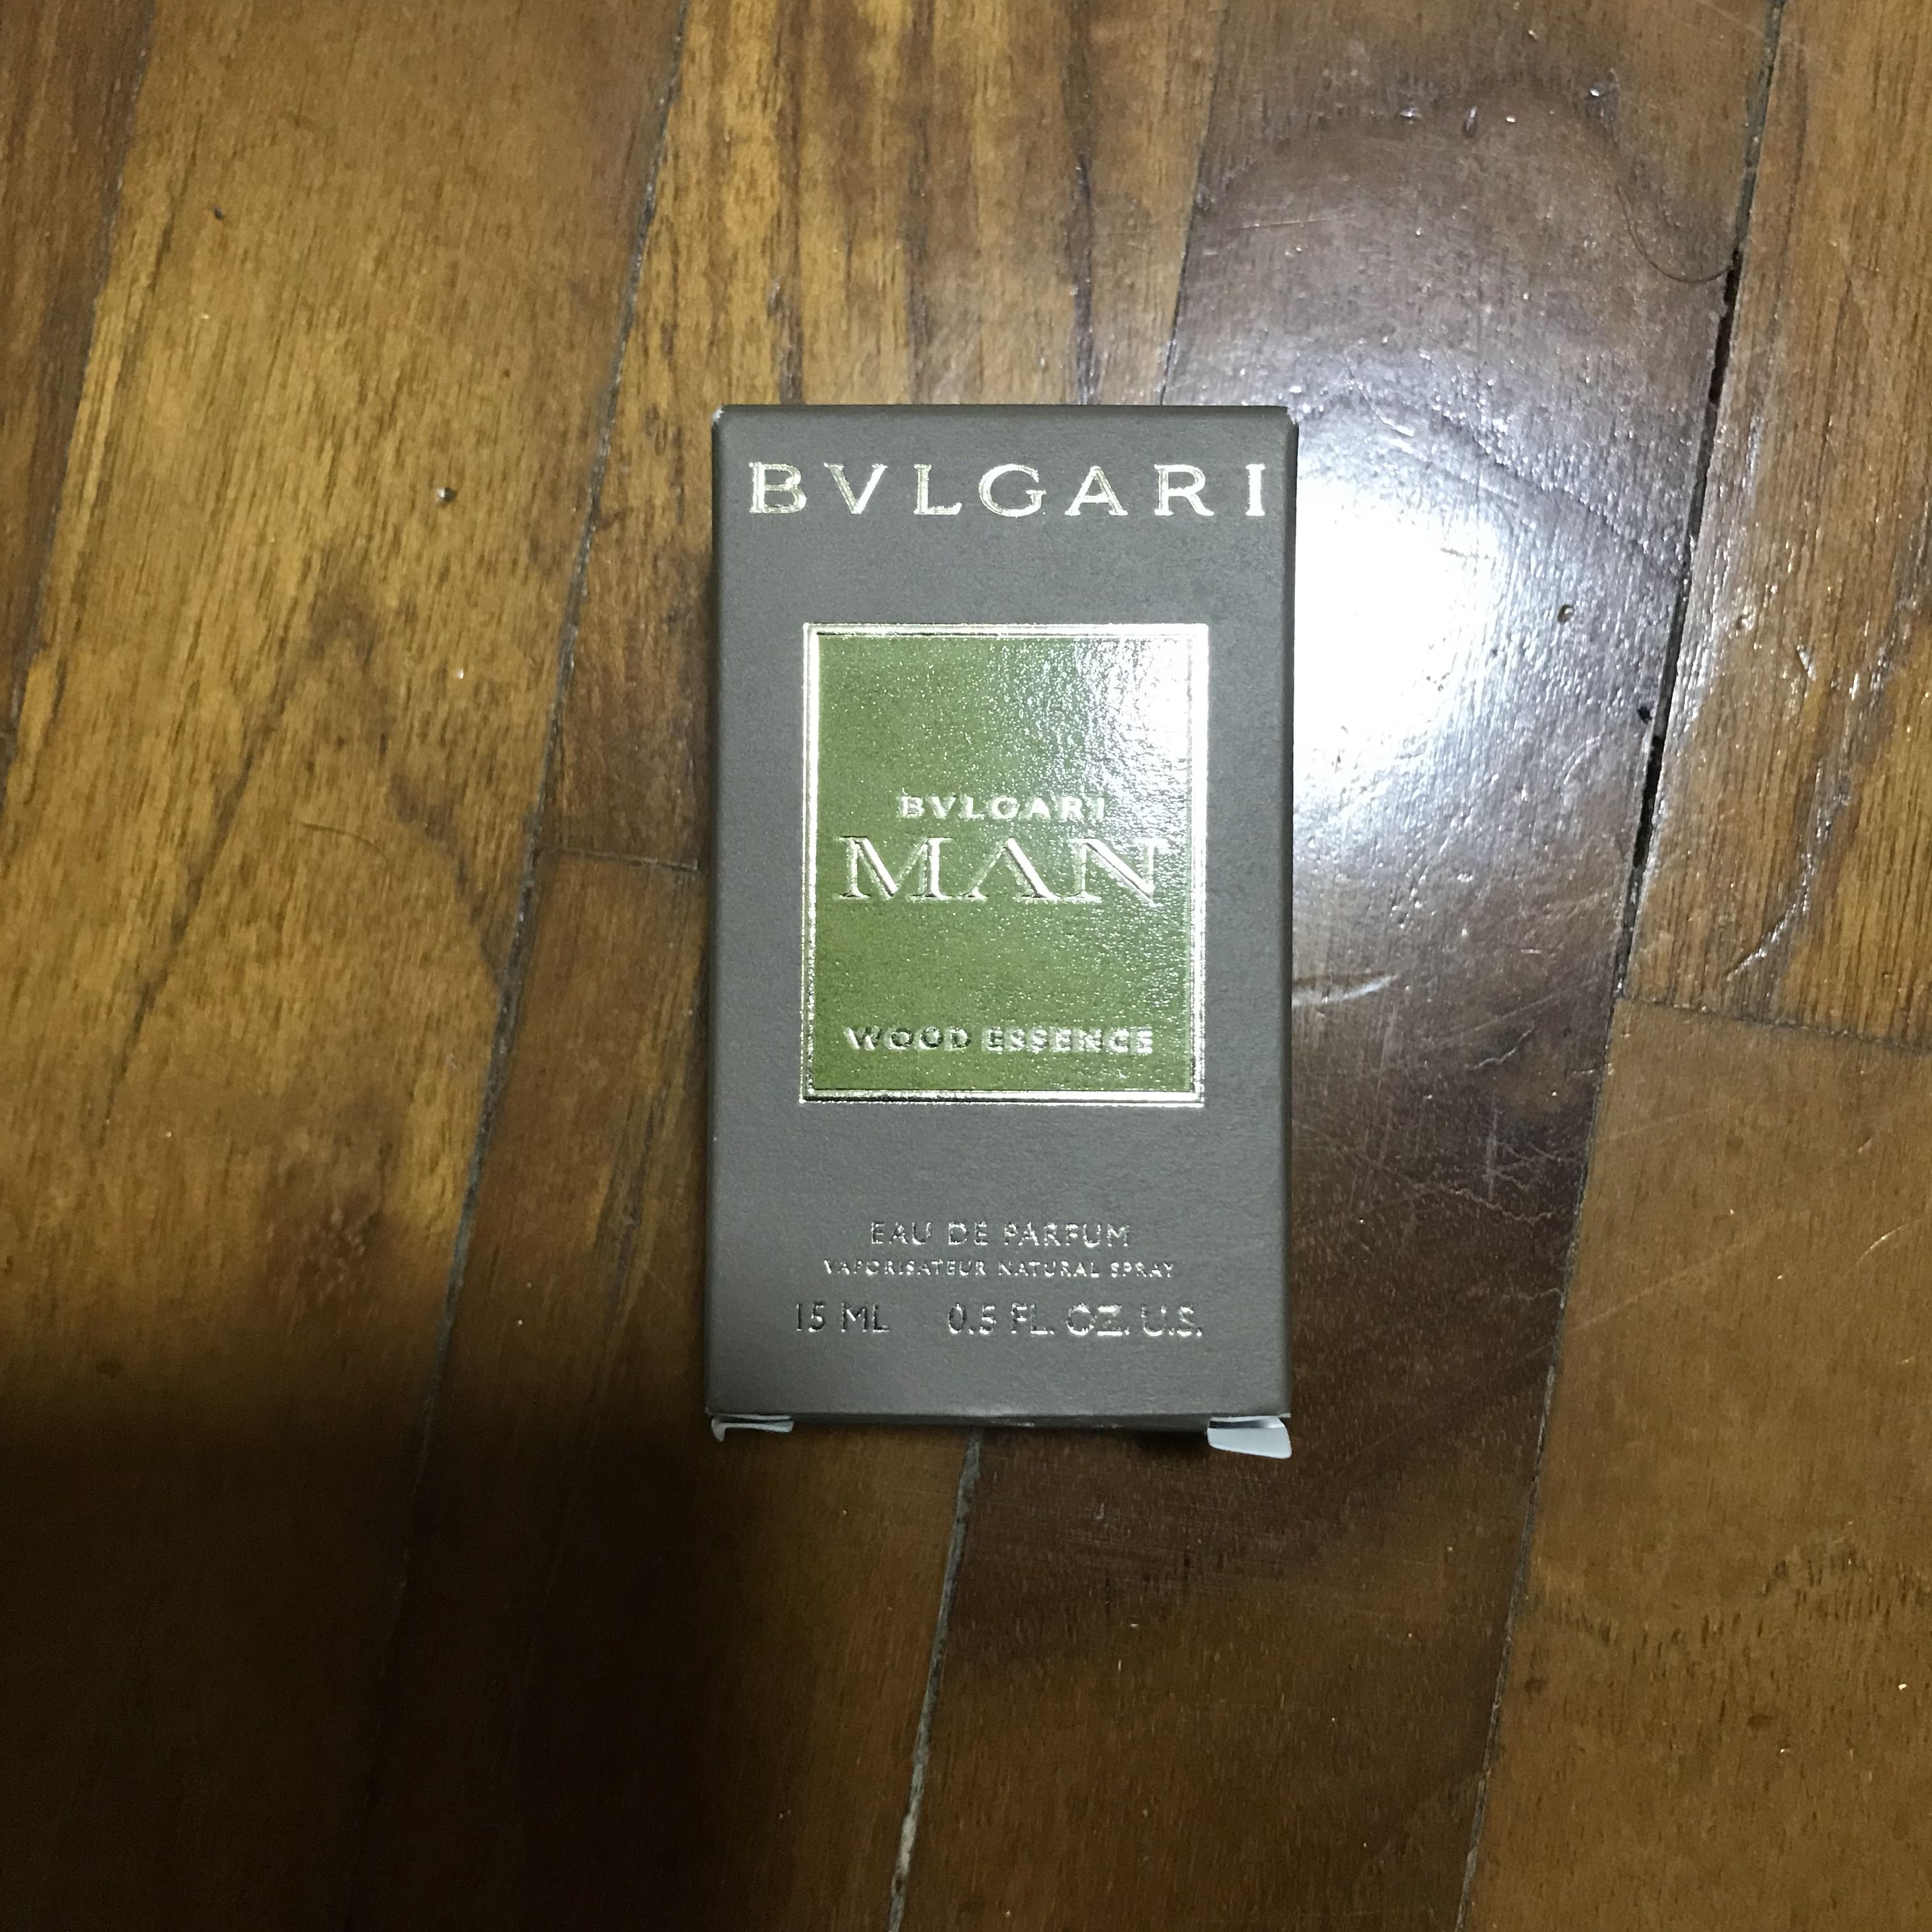 Bvlgari Men Wood Essence 15ml Travel Spray (Just Released!), Health    Beauty, Perfumes   Deodorants on Carousell bb44bd6b07